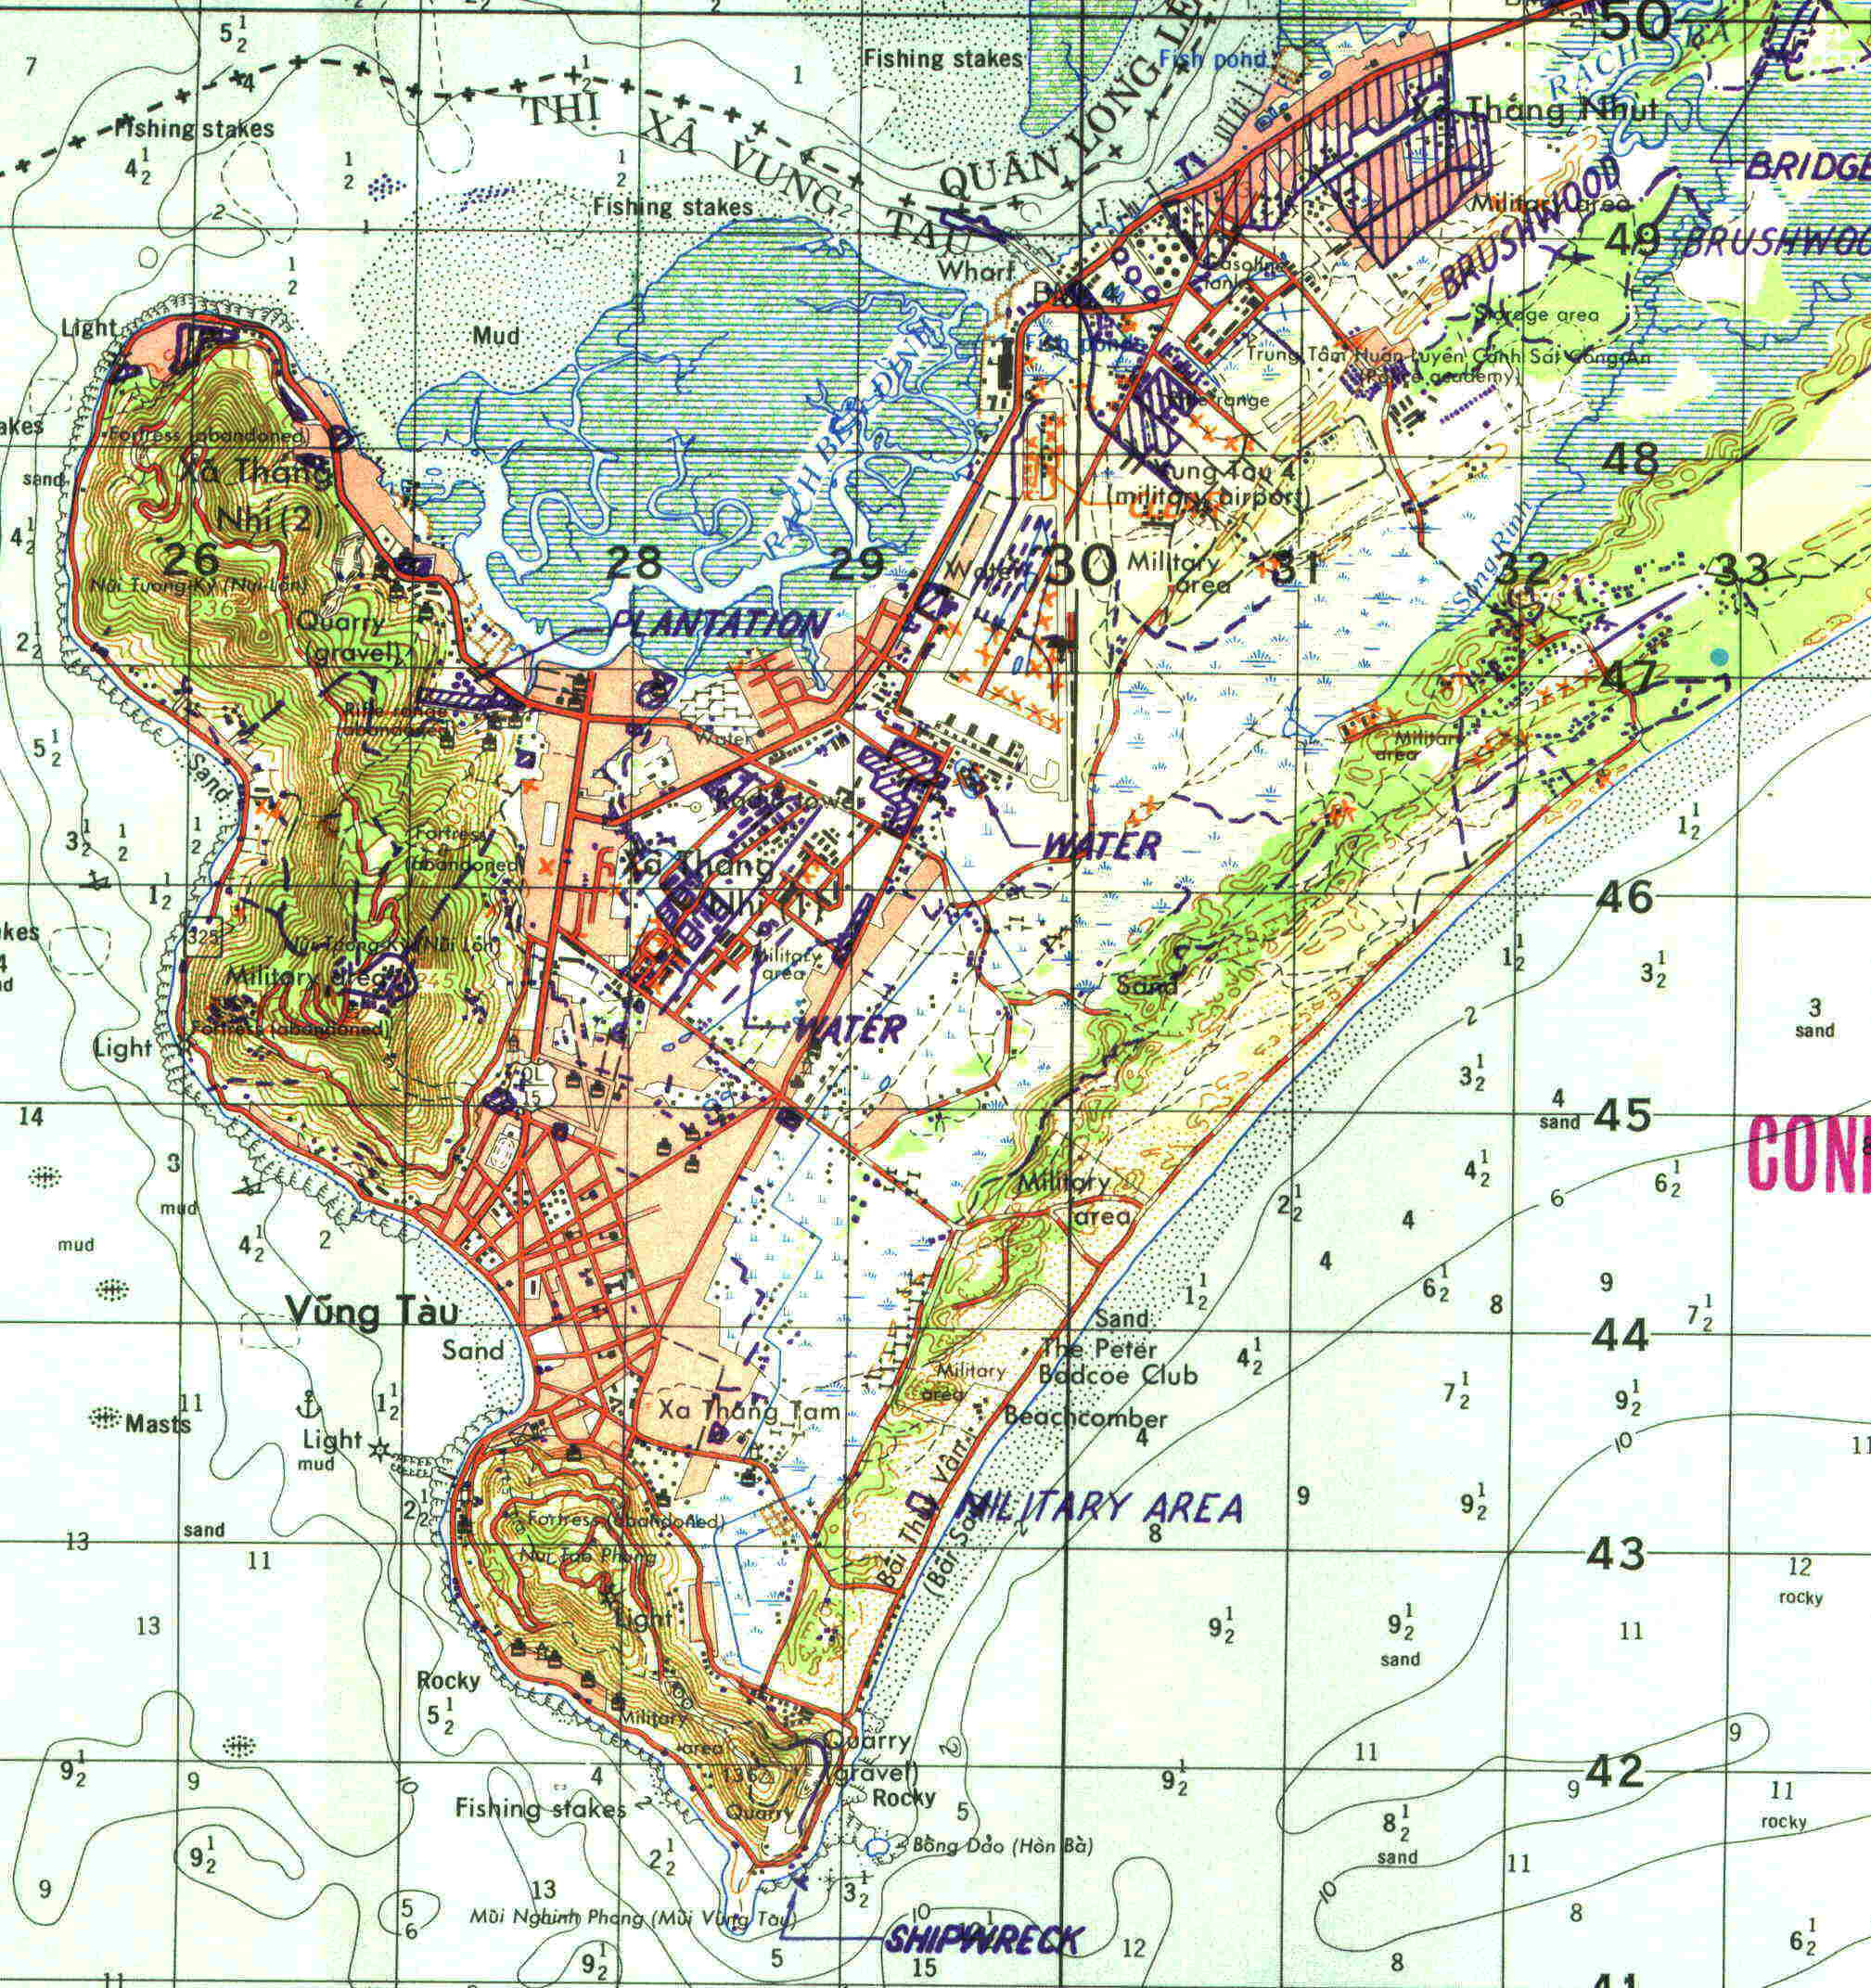 maginot line map with My Qth Maps on Maps also Maps together with Demarcation line  France additionally Content 8721004 4 in addition 40 Maps That Explain World War Ii.